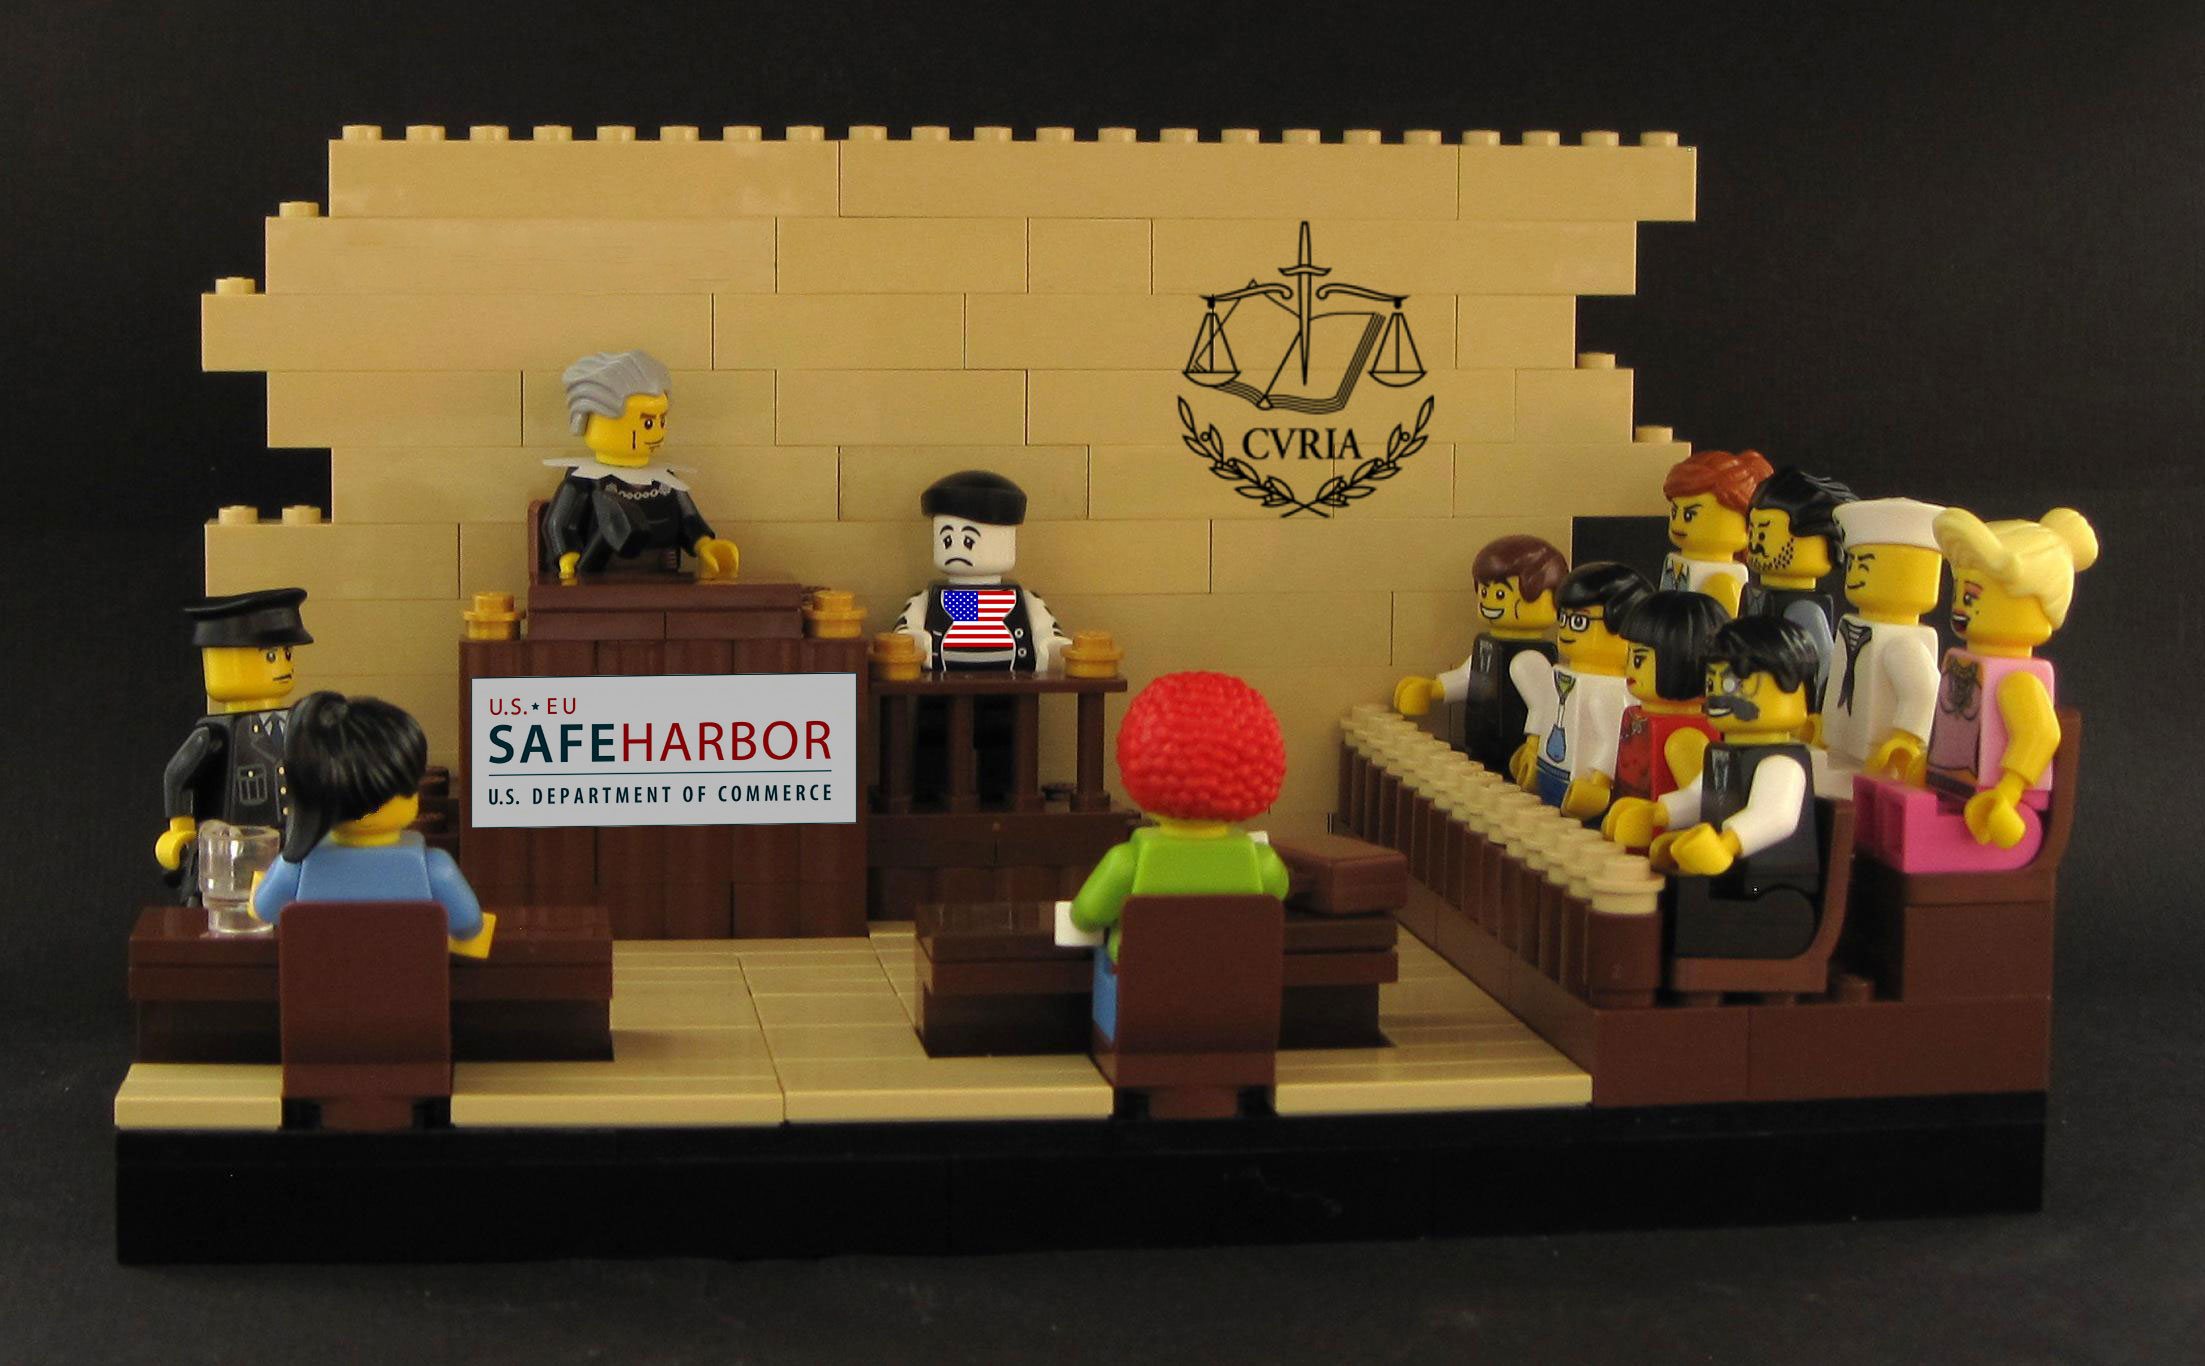 News safe harbor